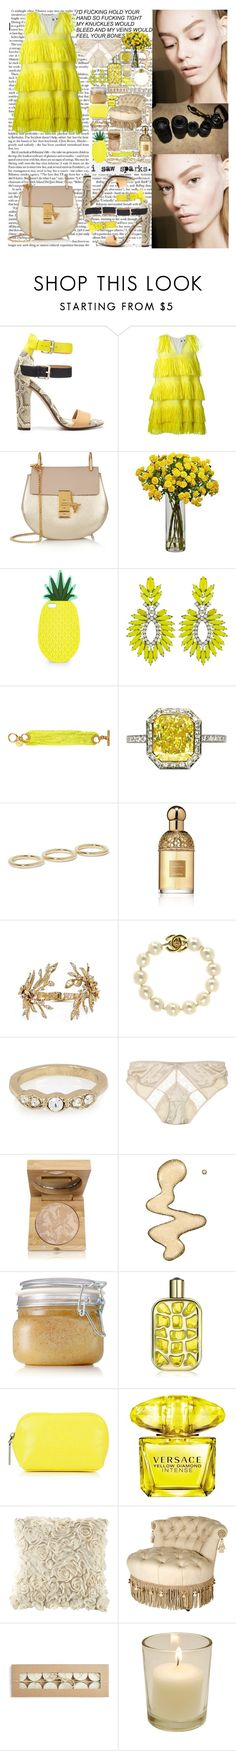 """""""Got me Fighting making nothing sacred We're tearing paint off the walls Nights are made of kiss and makeup It's on the edge of emotional"""" by labelsoflove ❤ liked on Polyvore featuring Zara, MSGM, Chloé, Monsoon, Elizabeth Cole, Mimco, J. Birnbach, Jennifer Fisher, Guerlain and Marchesa"""